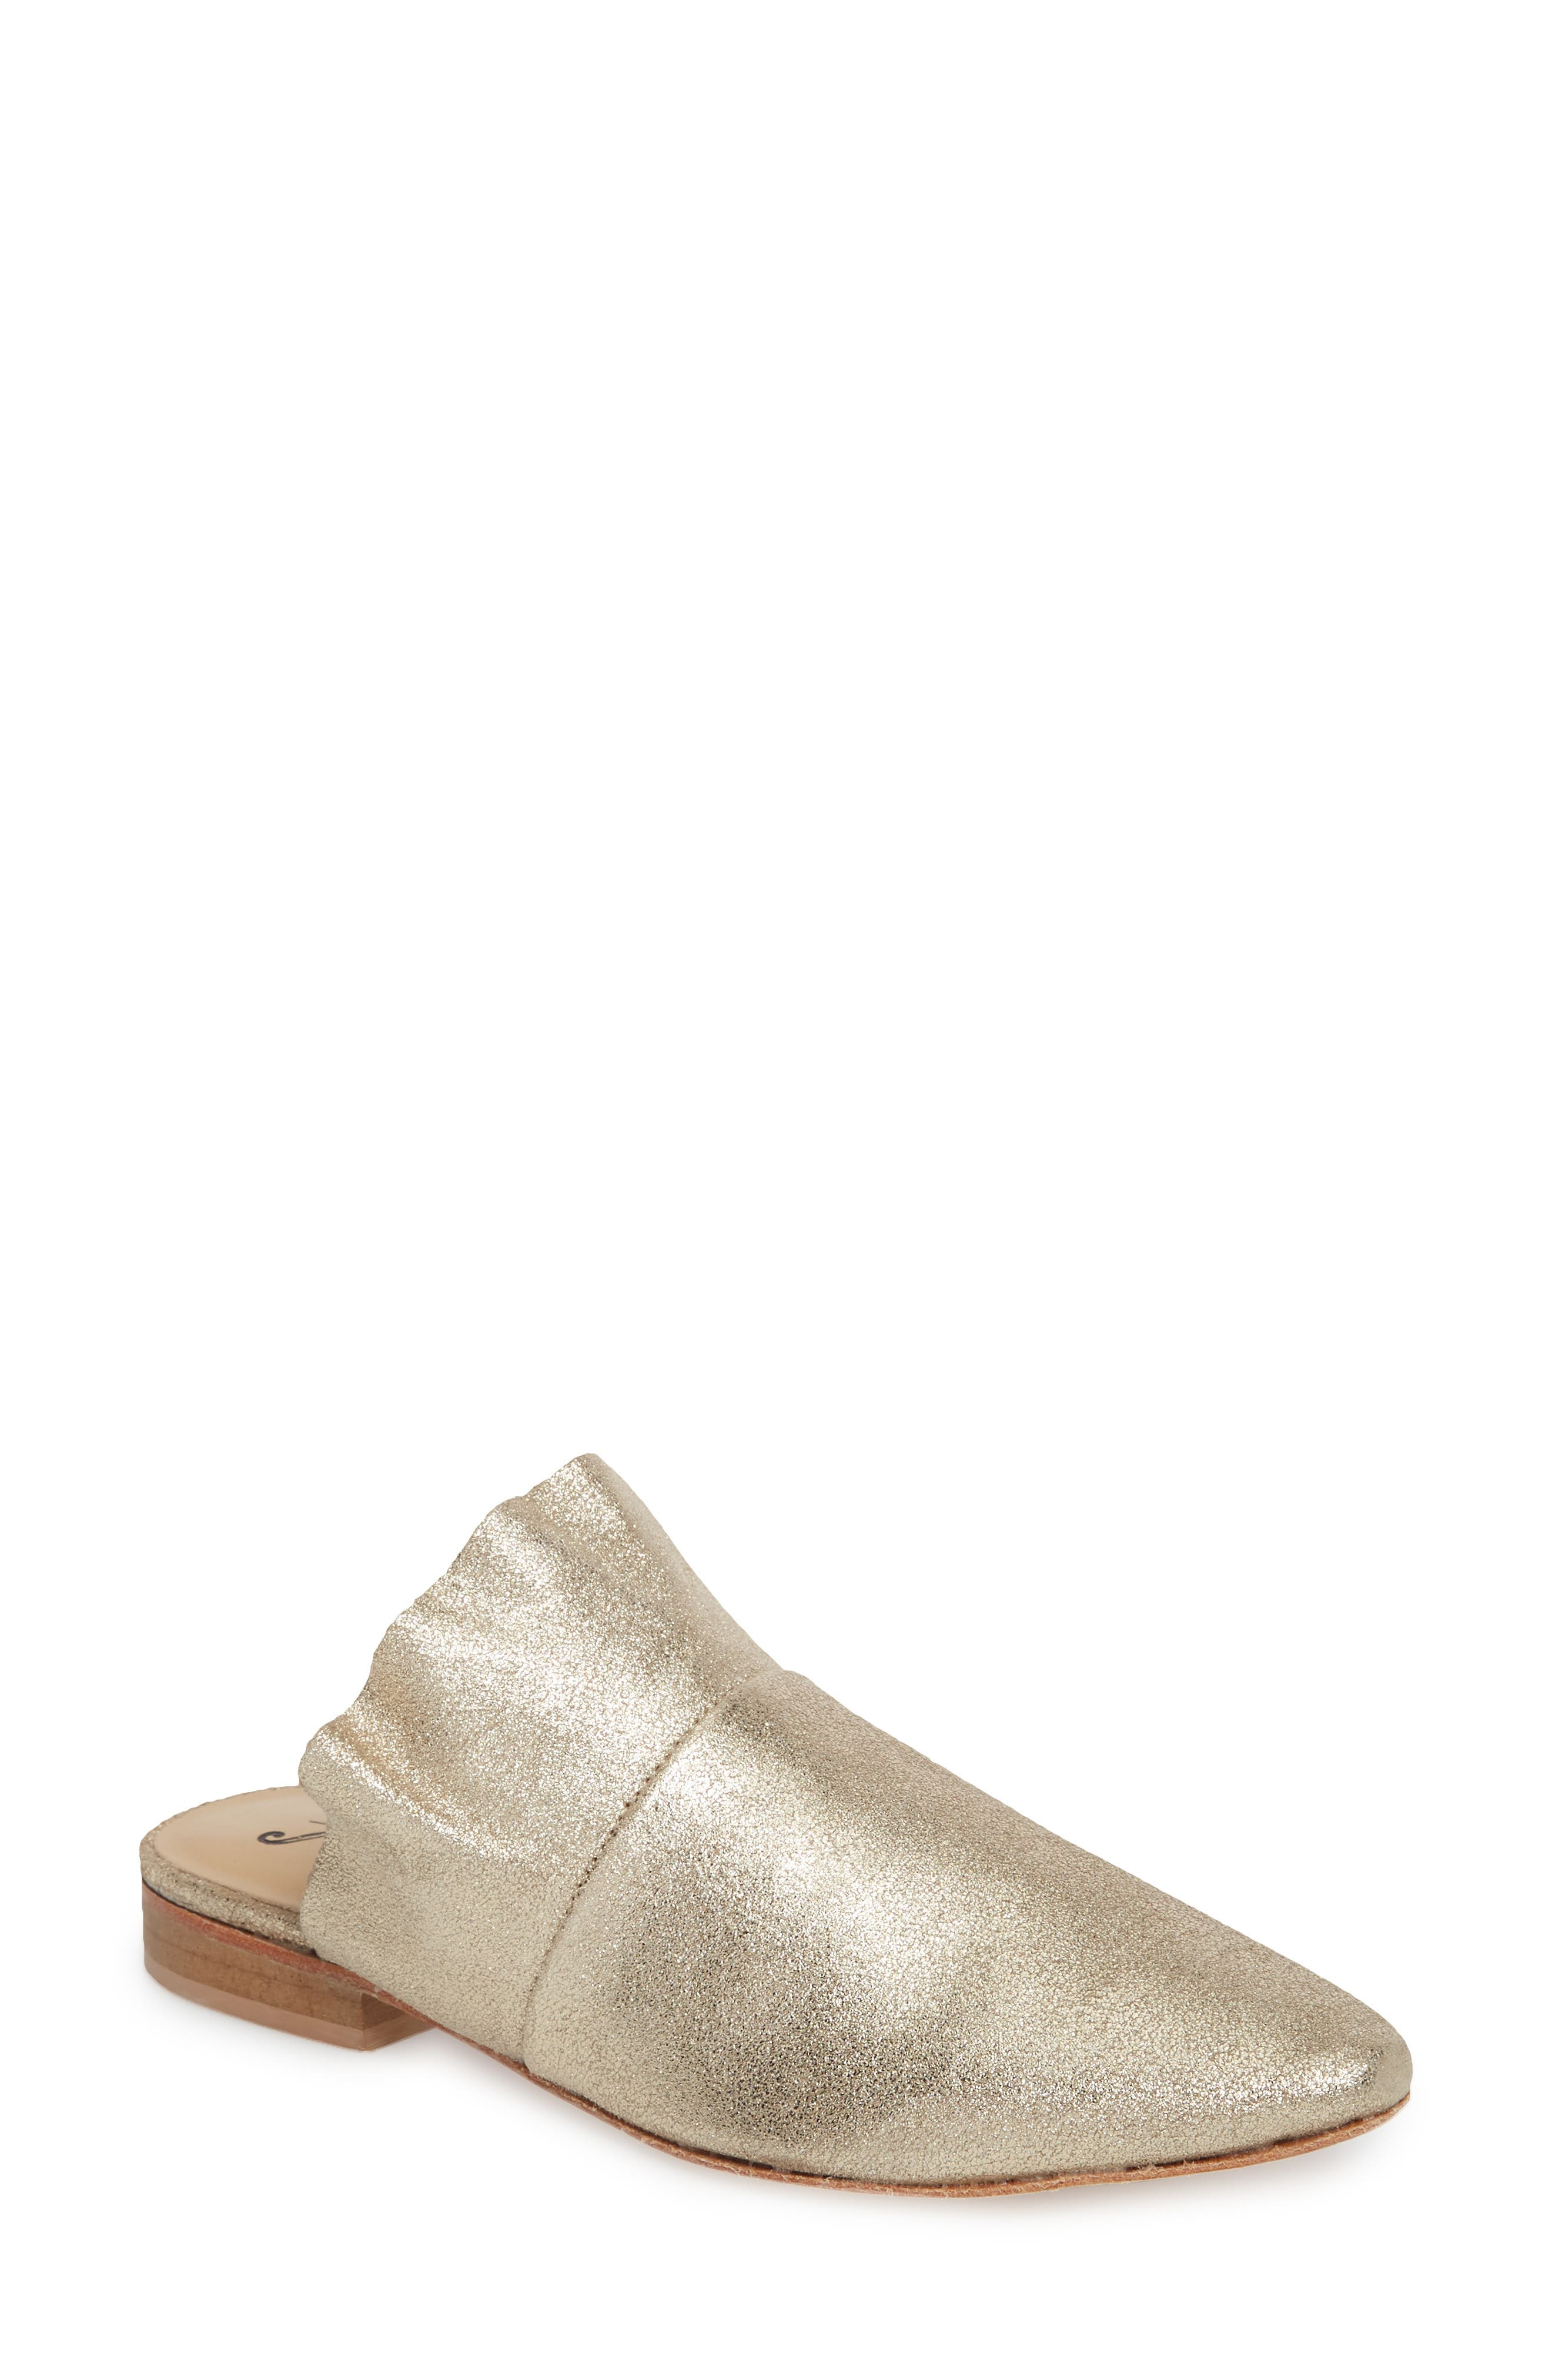 Sienna Ruffle Mule,                         Main,                         color, 710